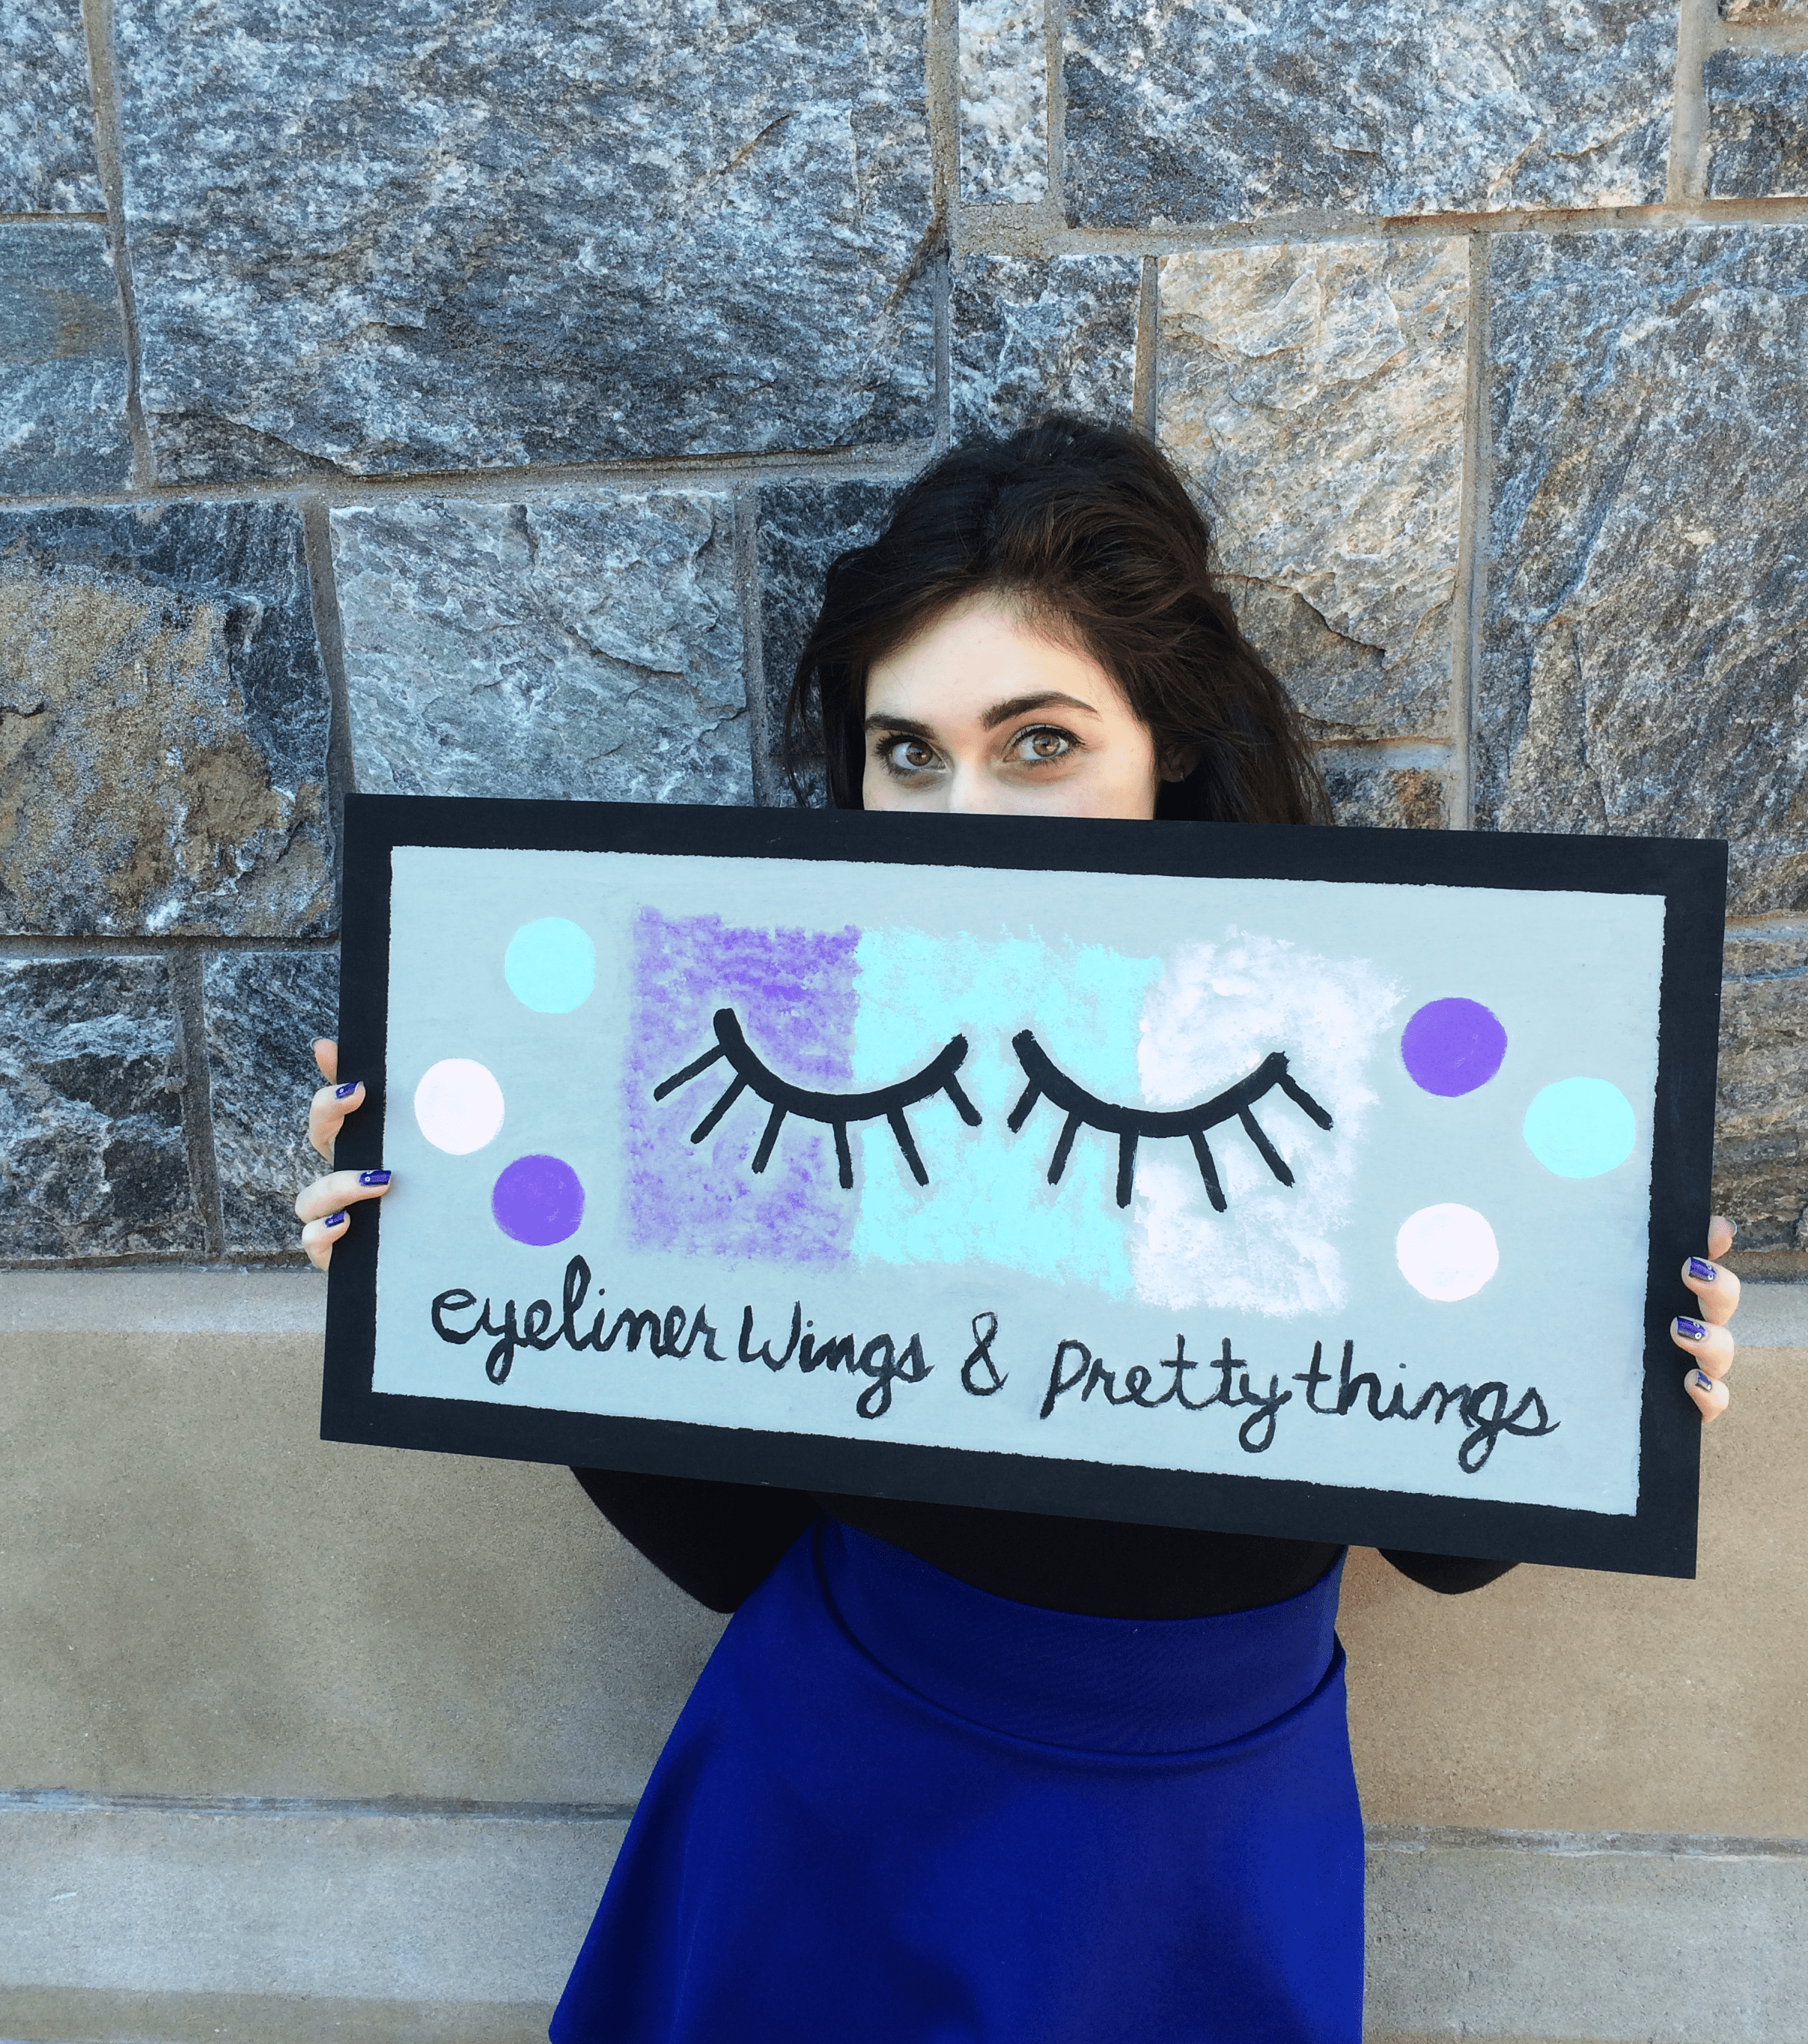 Eyeliner Wings & Pretty Things - About Paige DiFiore